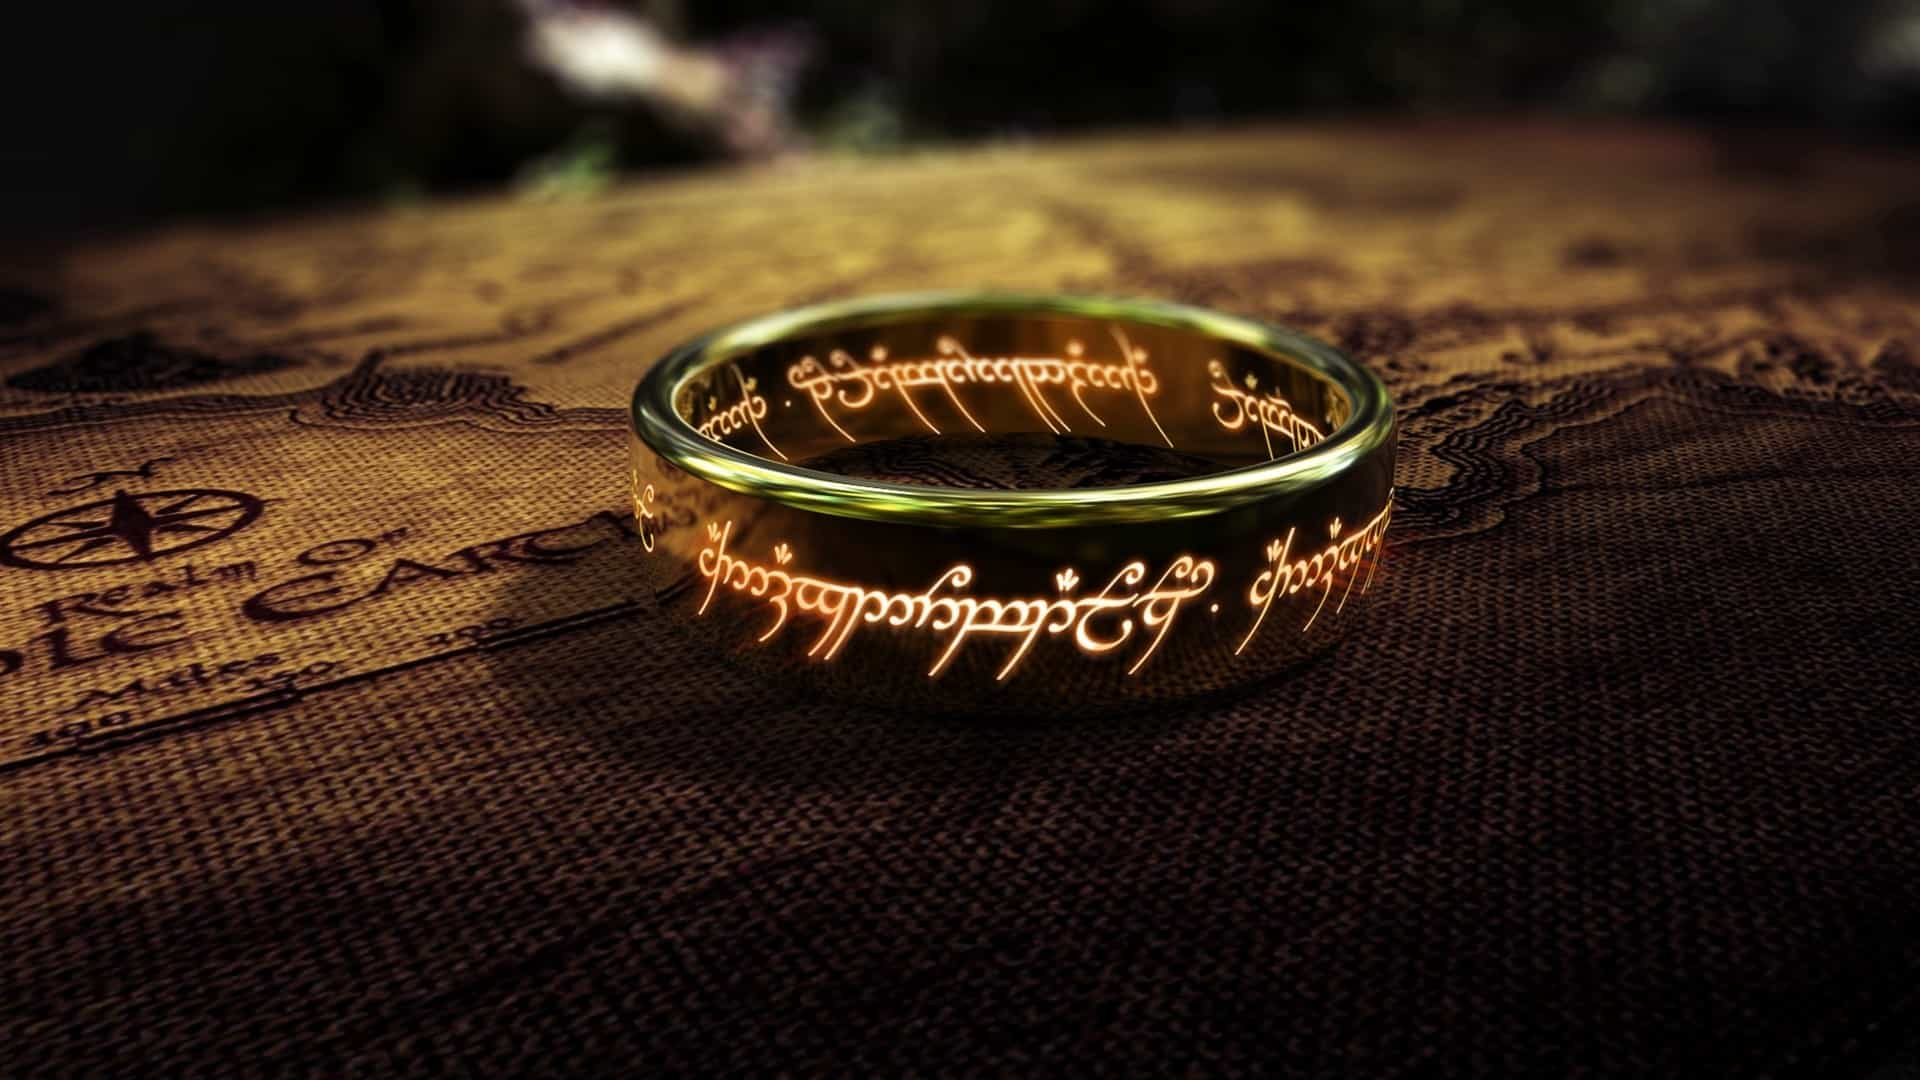 The one ring 1